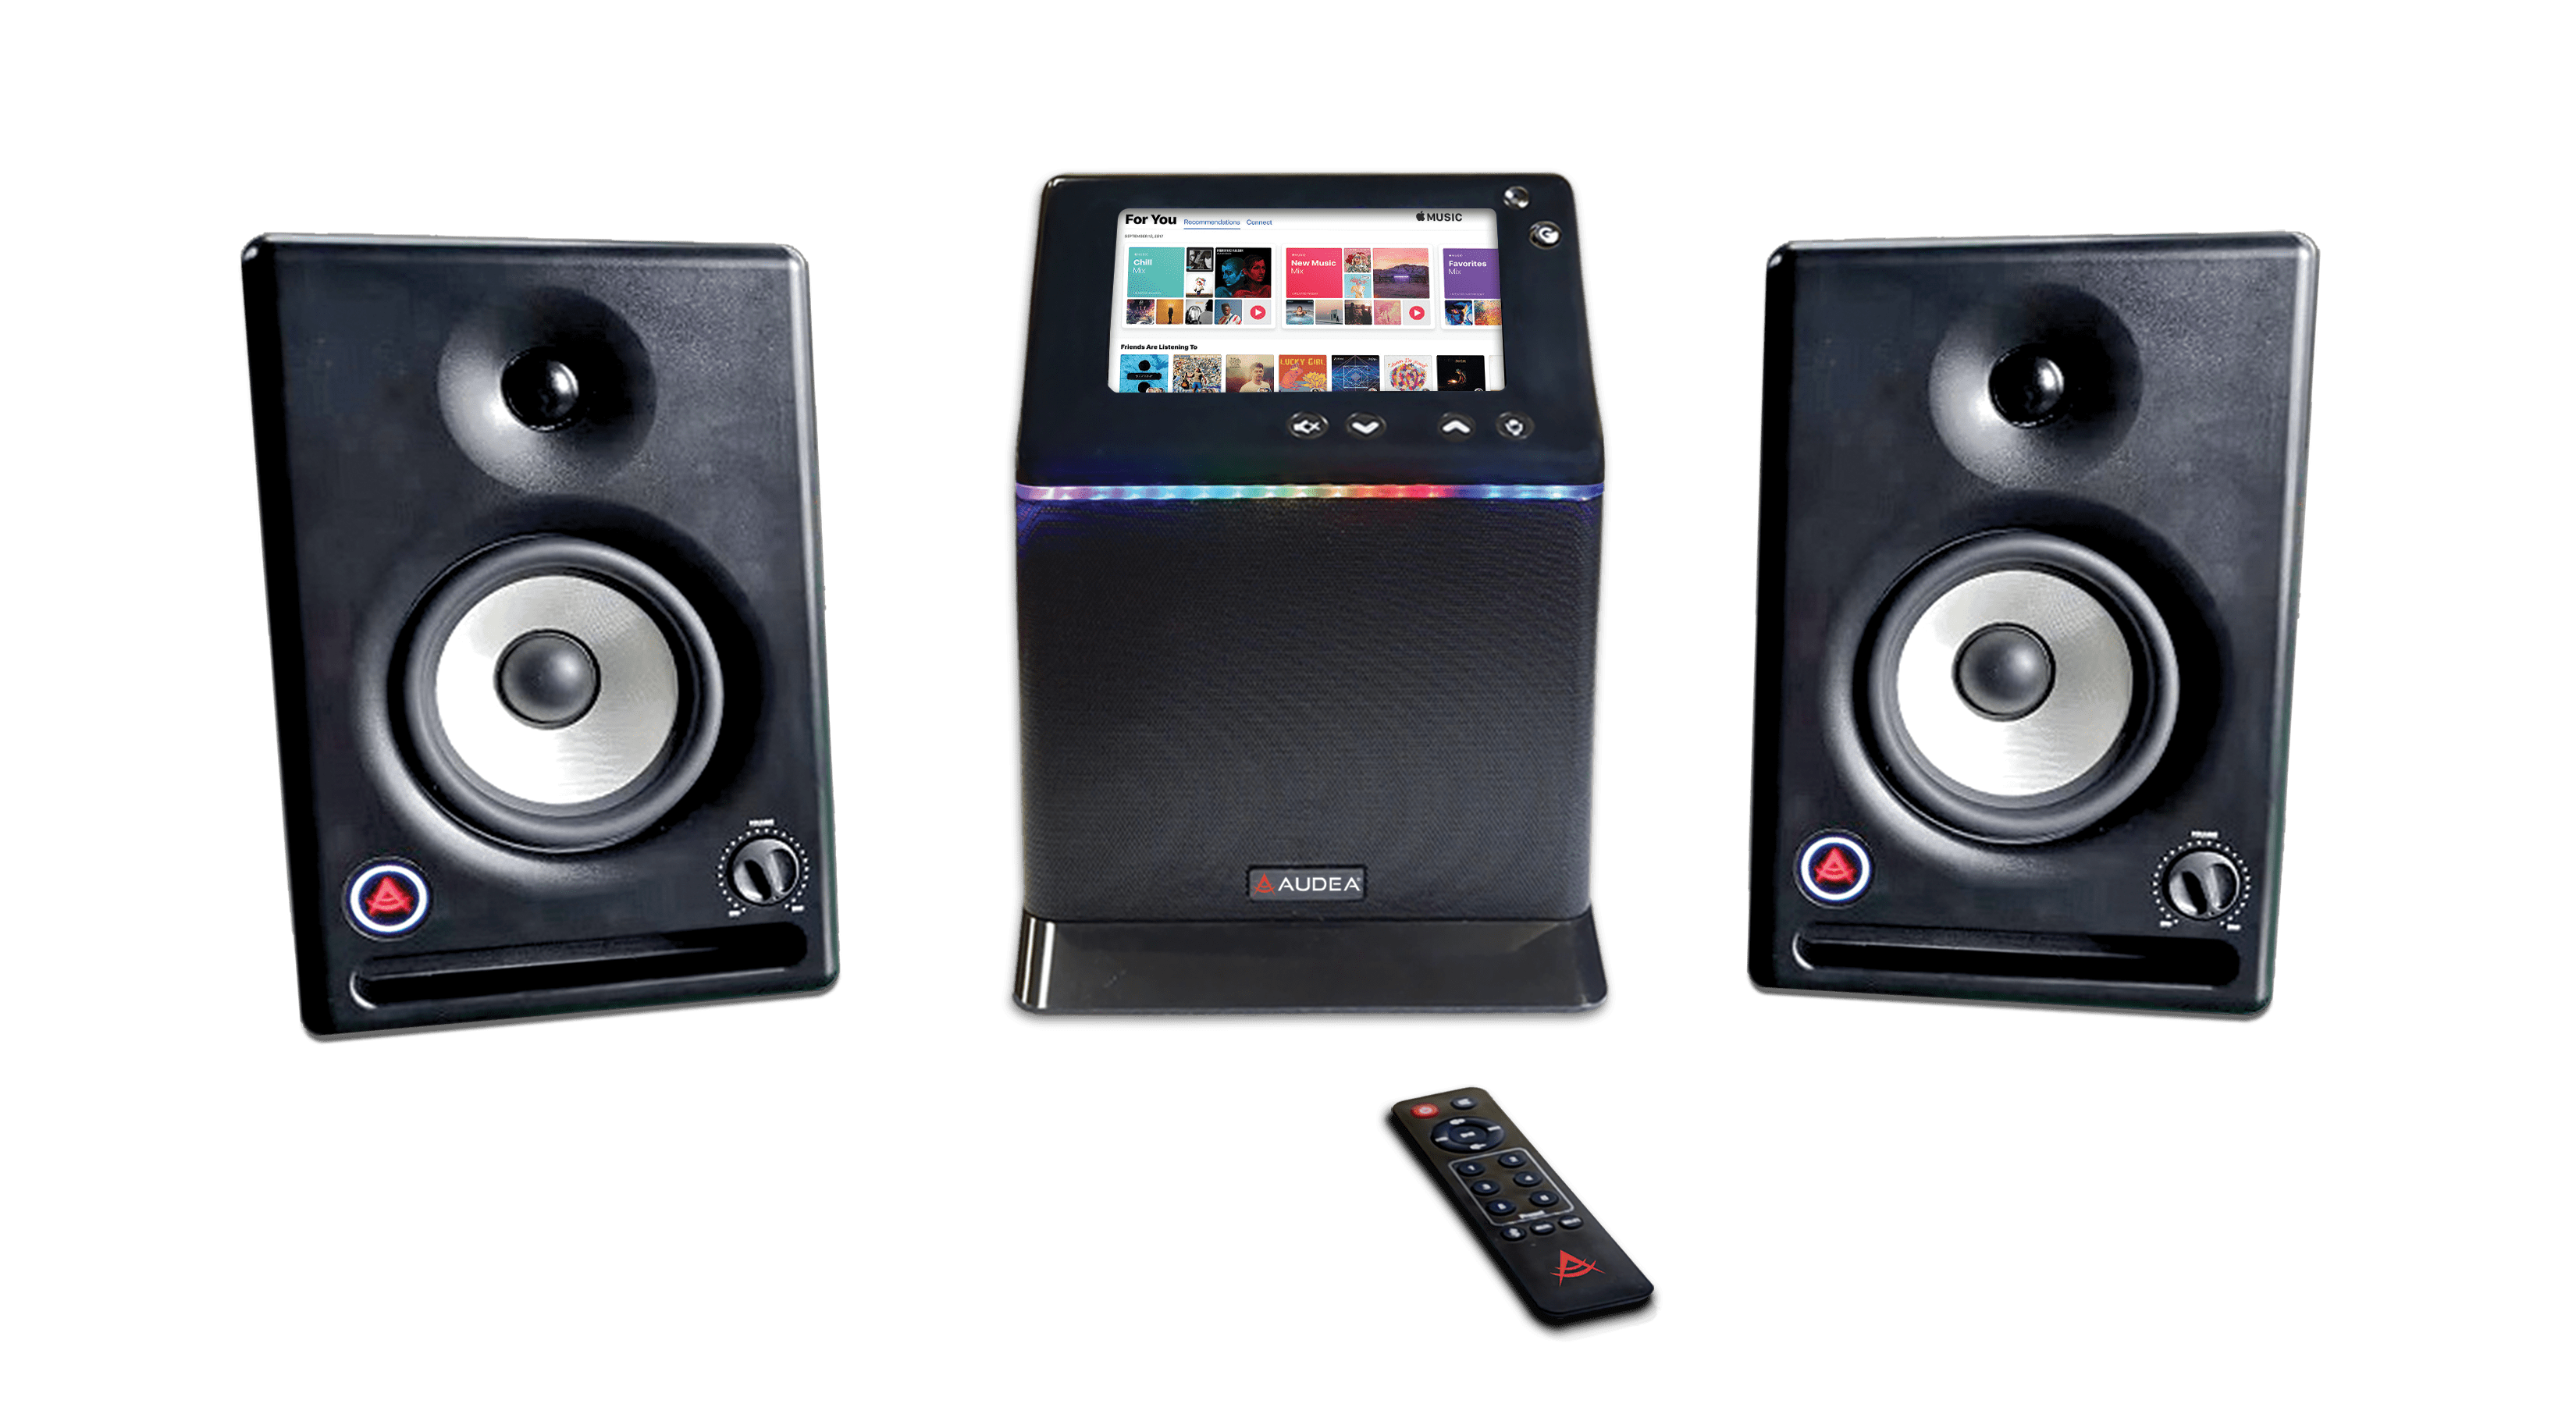 AUDEA® Introduces the World's Highest-Quality Smart Speaker That Runs Music and Video Apps Without a Phone